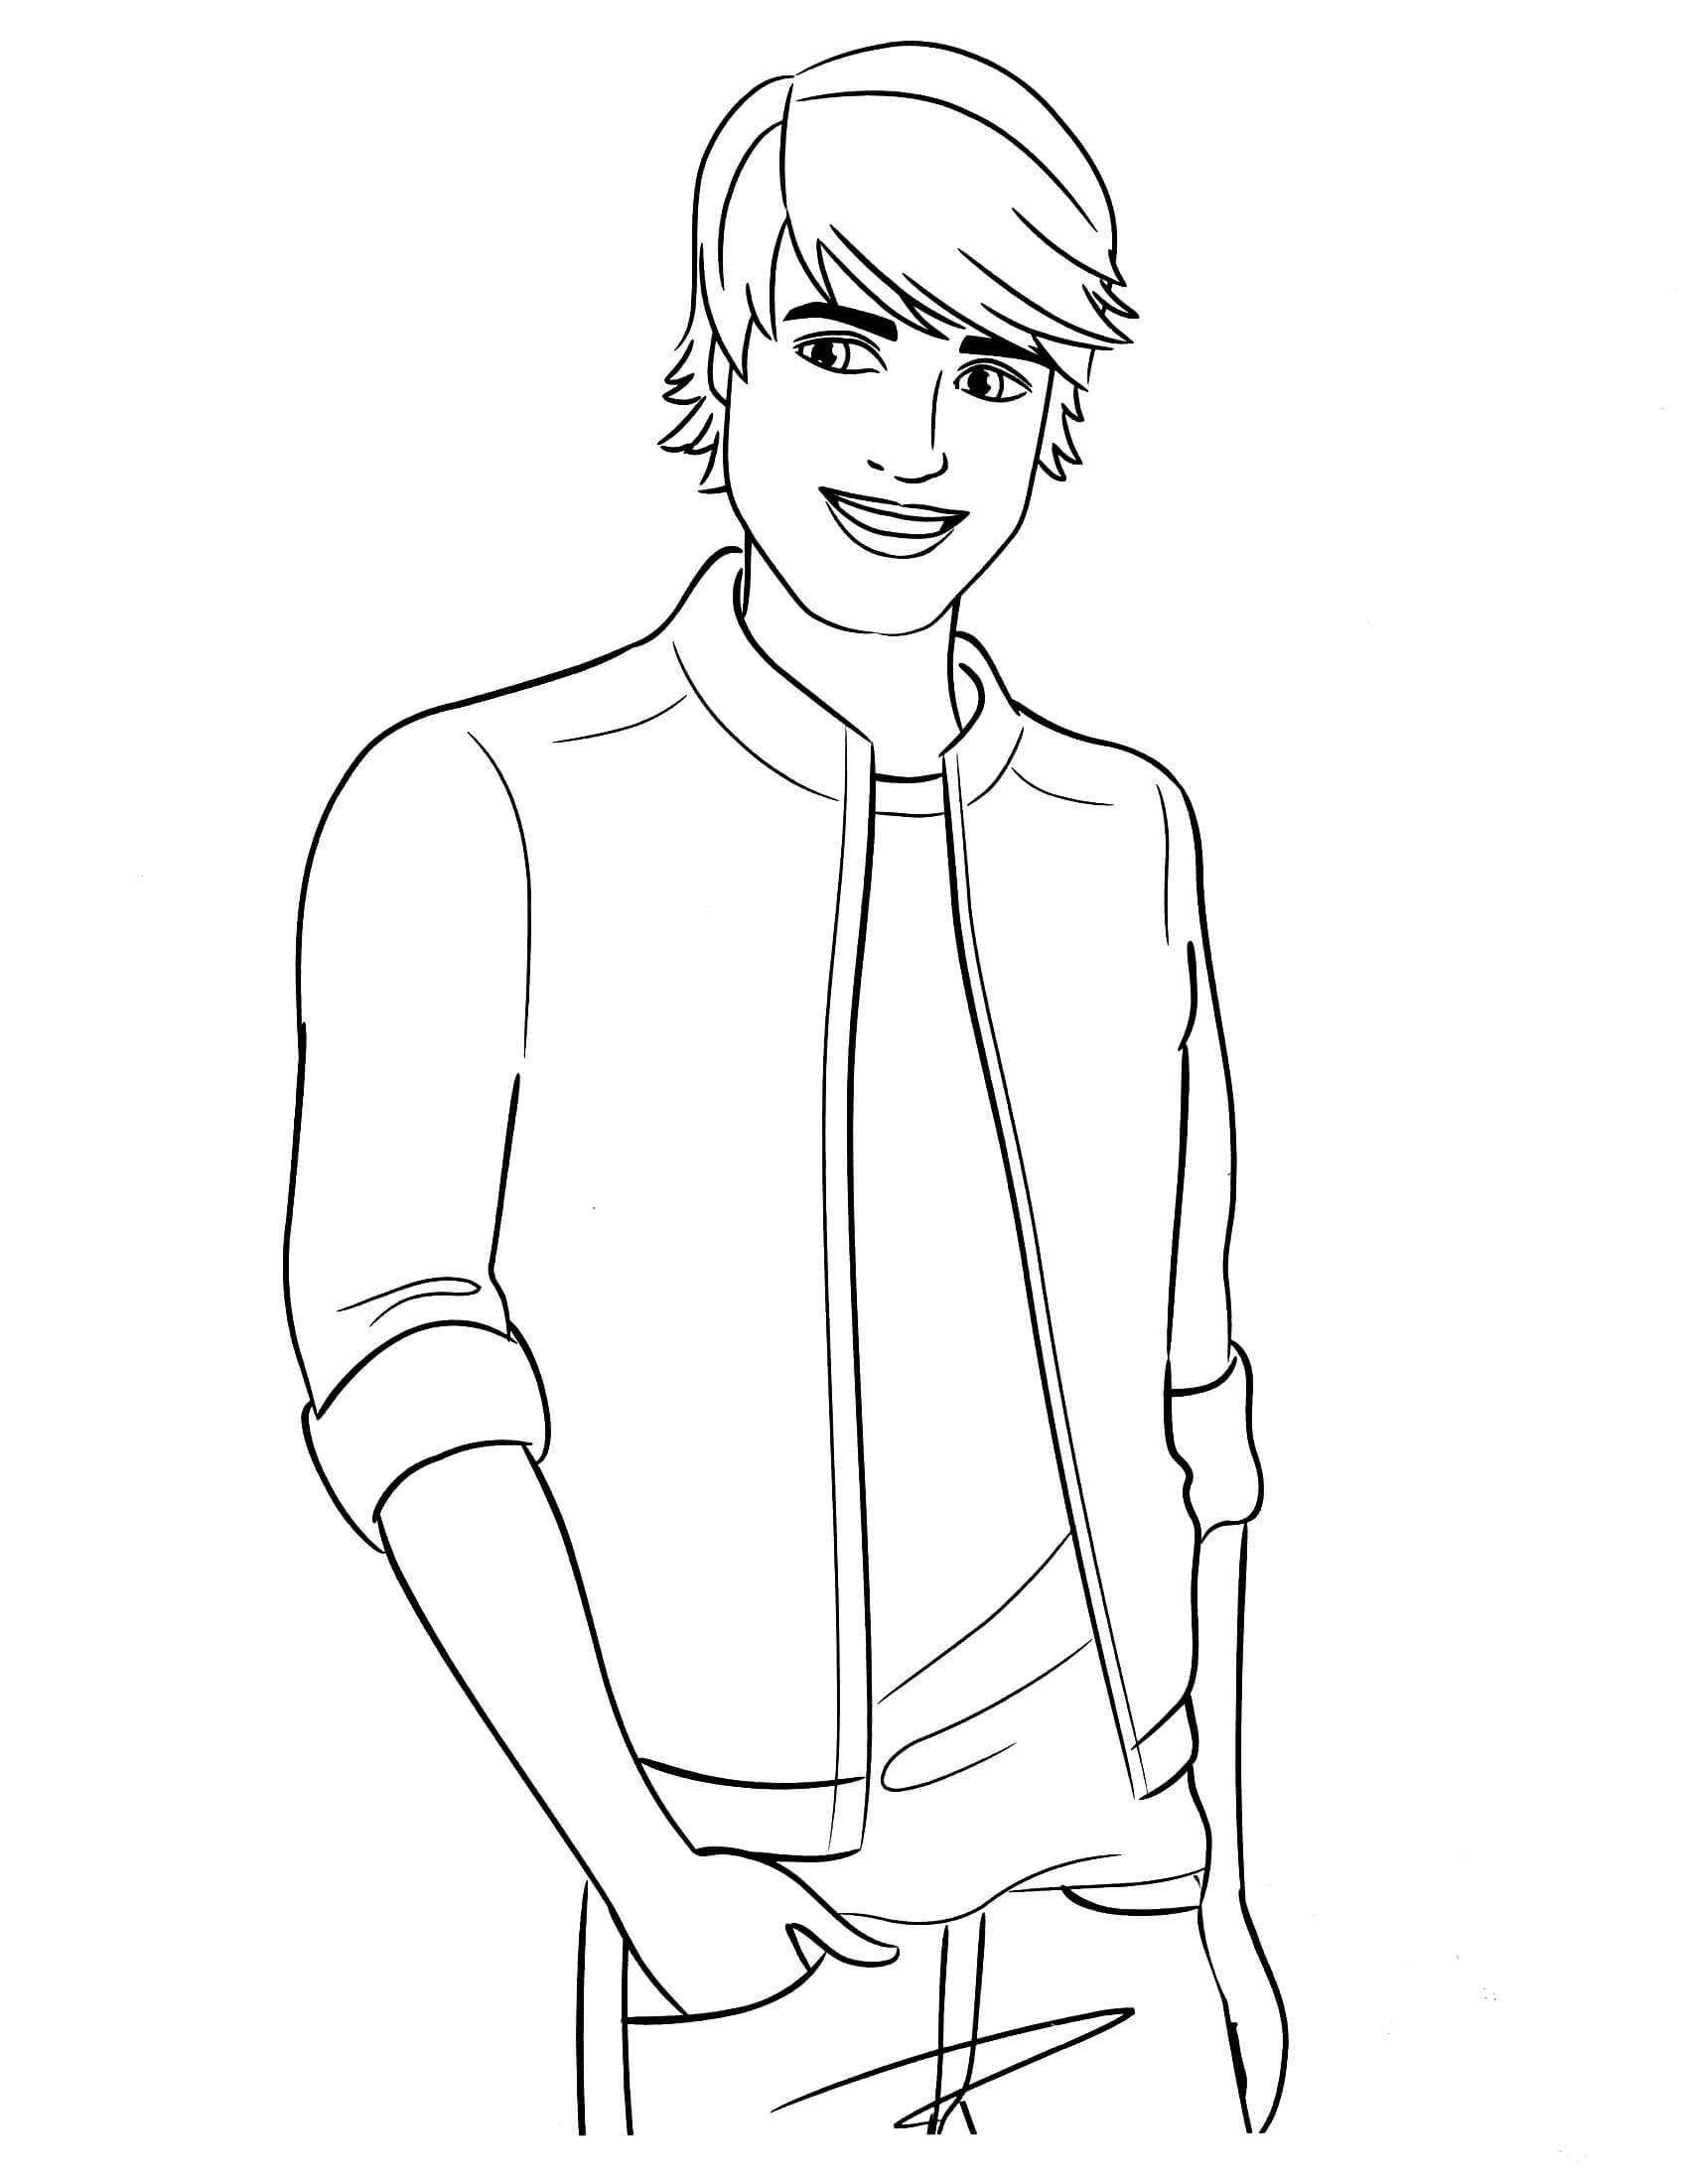 Ken Doll Coloring Pages At Getdrawingscom Free For Personal Use